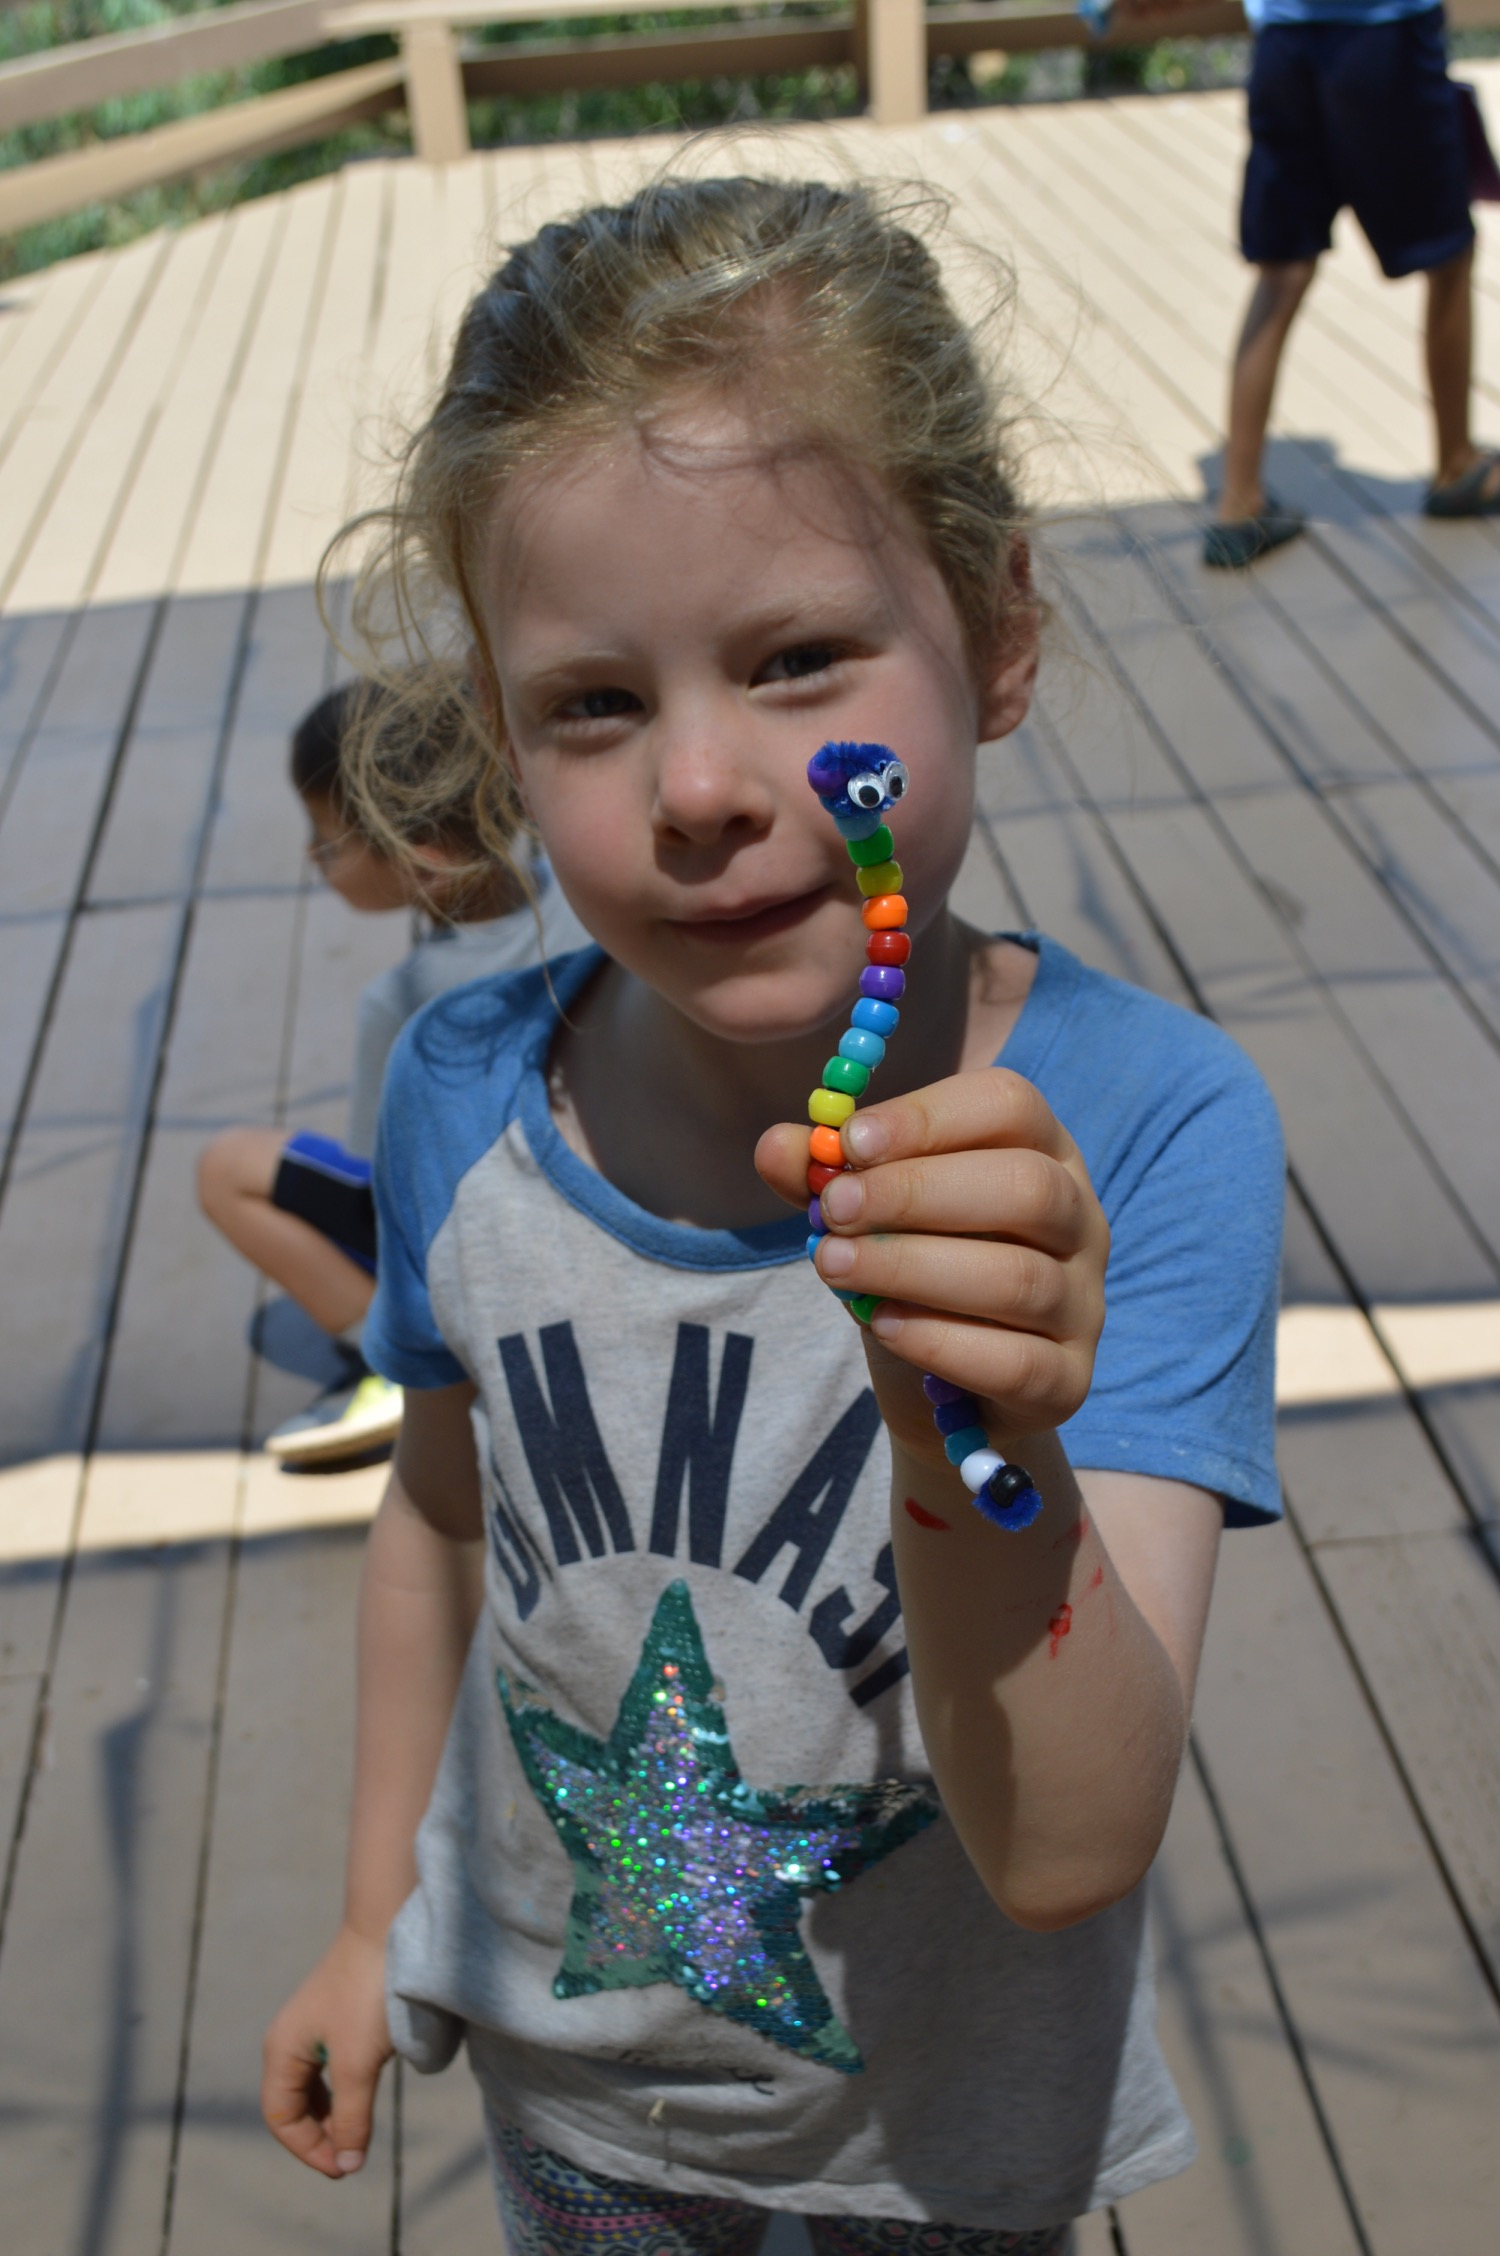 Campers might make a beaded friend,